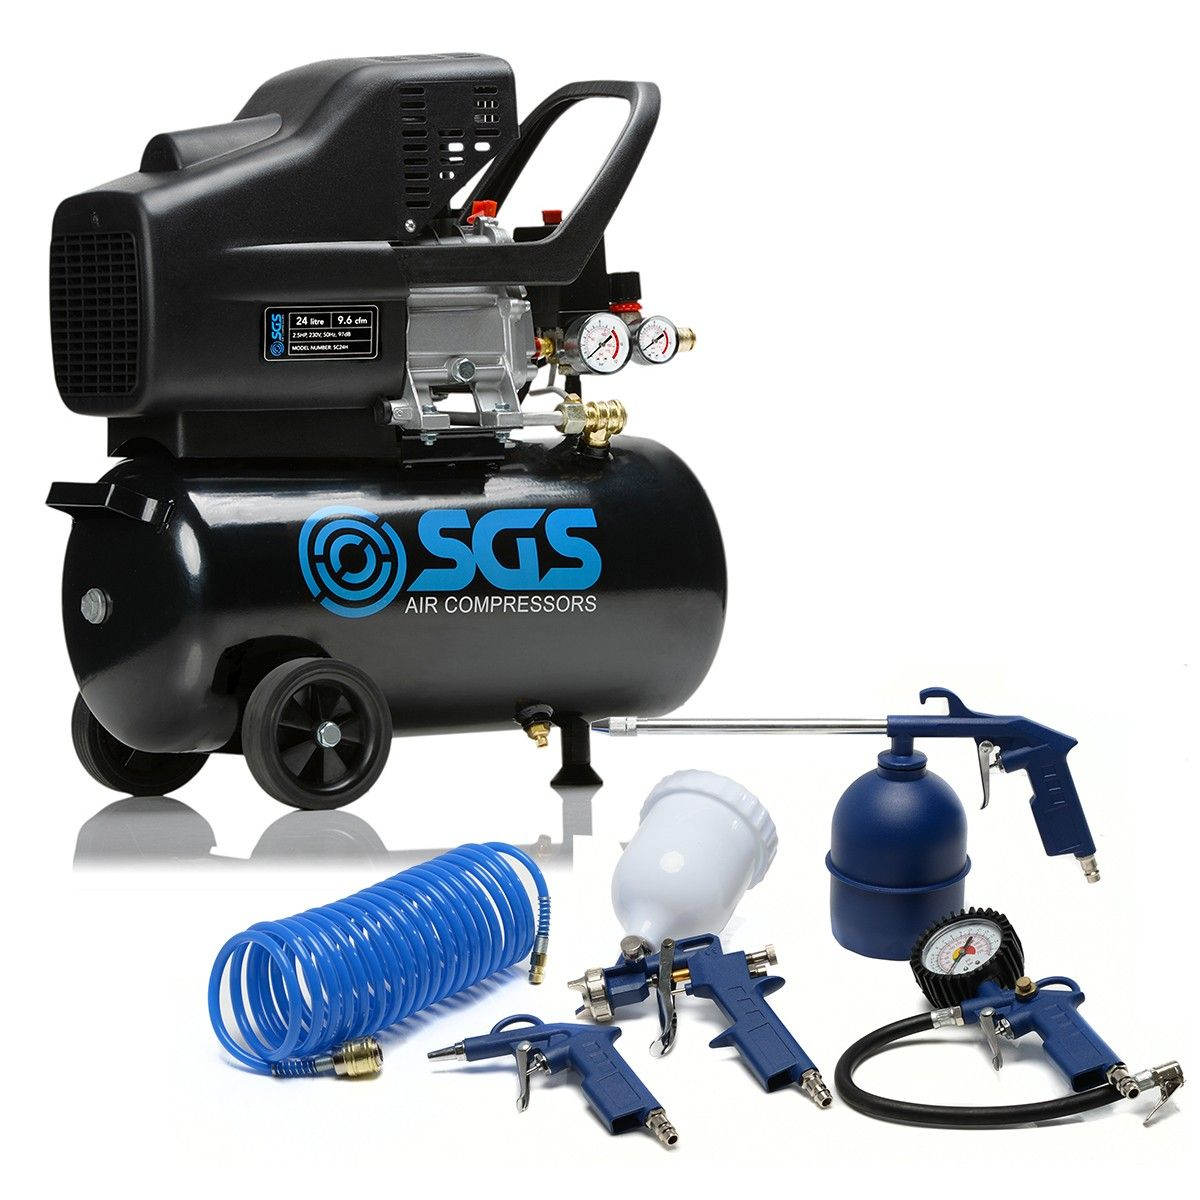 SGS 24 Litre Direct Drive Air Compressor & 5 Piece Tool